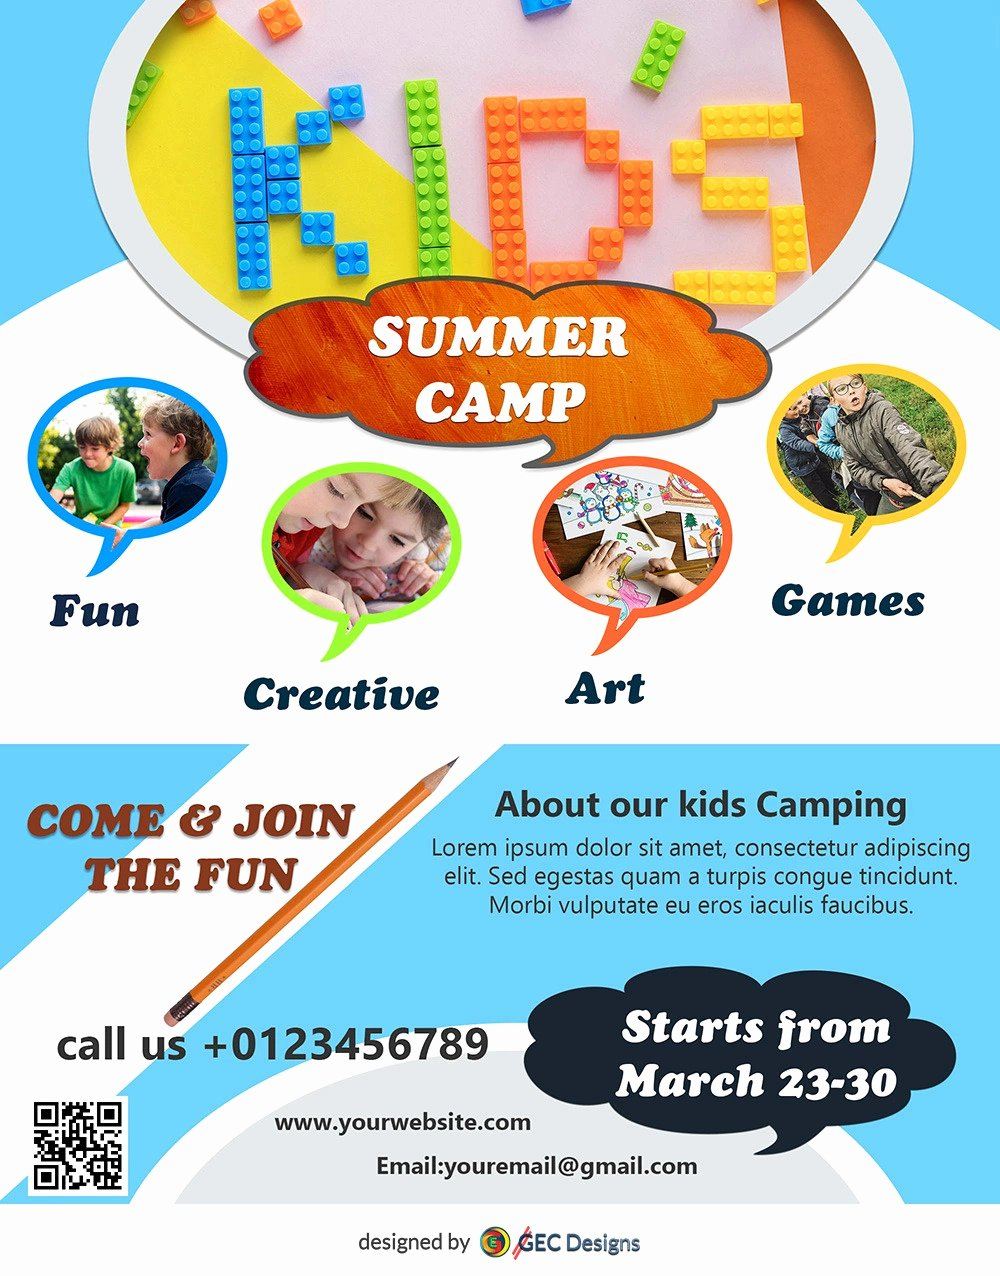 Summer Camp Flyer Templates Free Inspirational Download Free Kids Summer Camp Flyer Design Templates